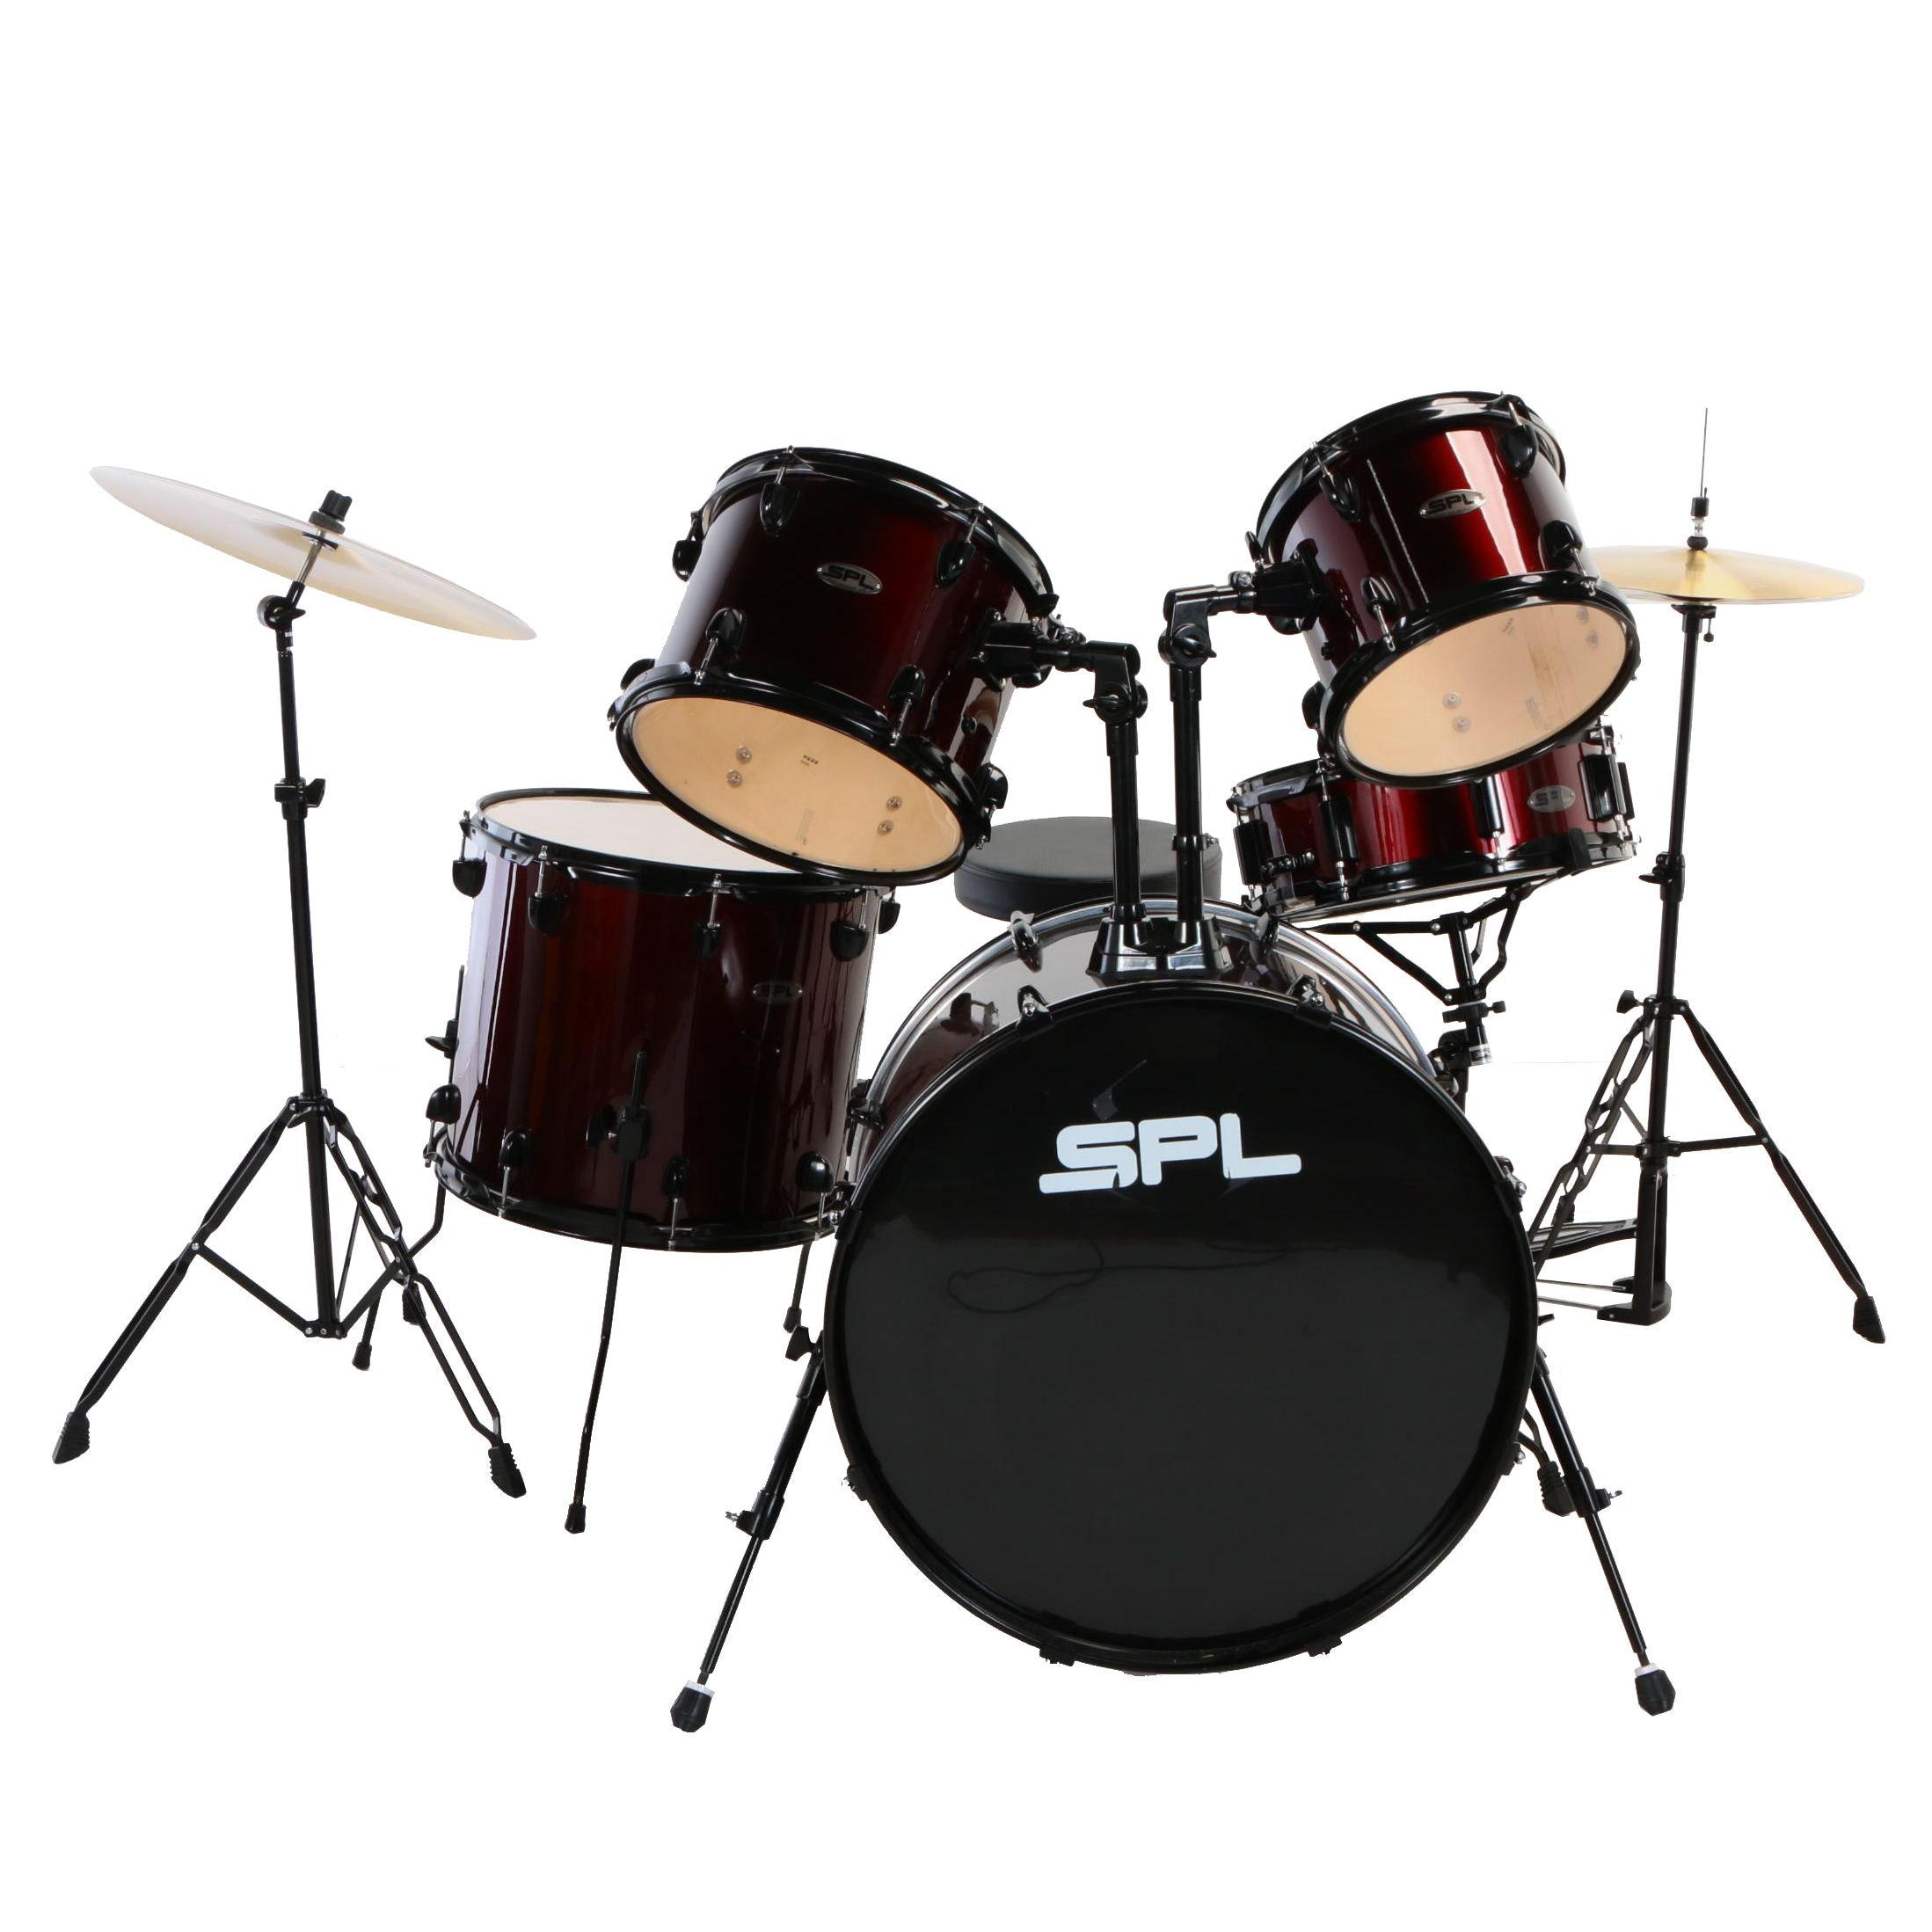 SPL Five Piece Drum Set